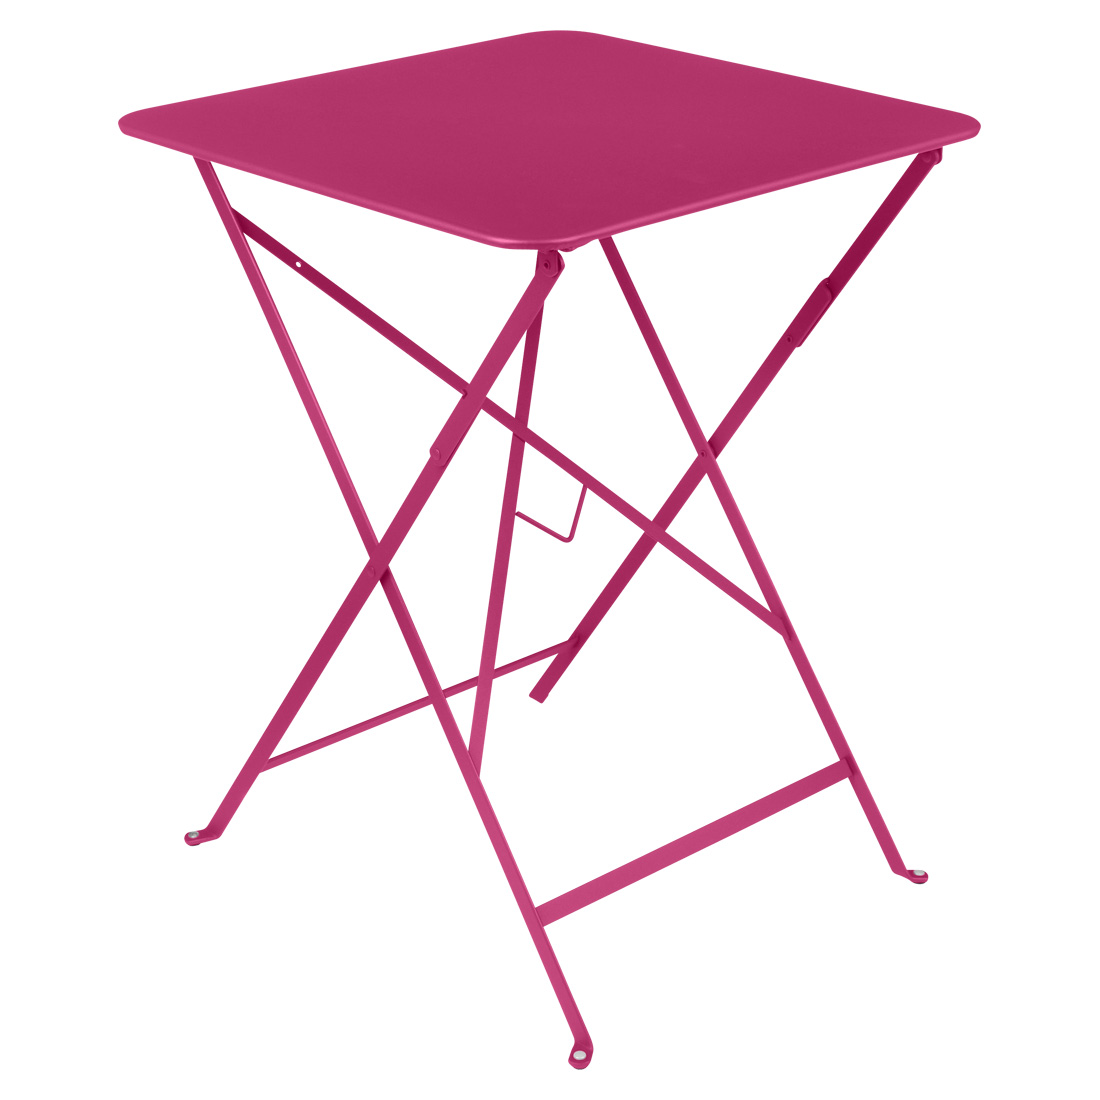 Bistro Square Table 57cm - Fuchsia